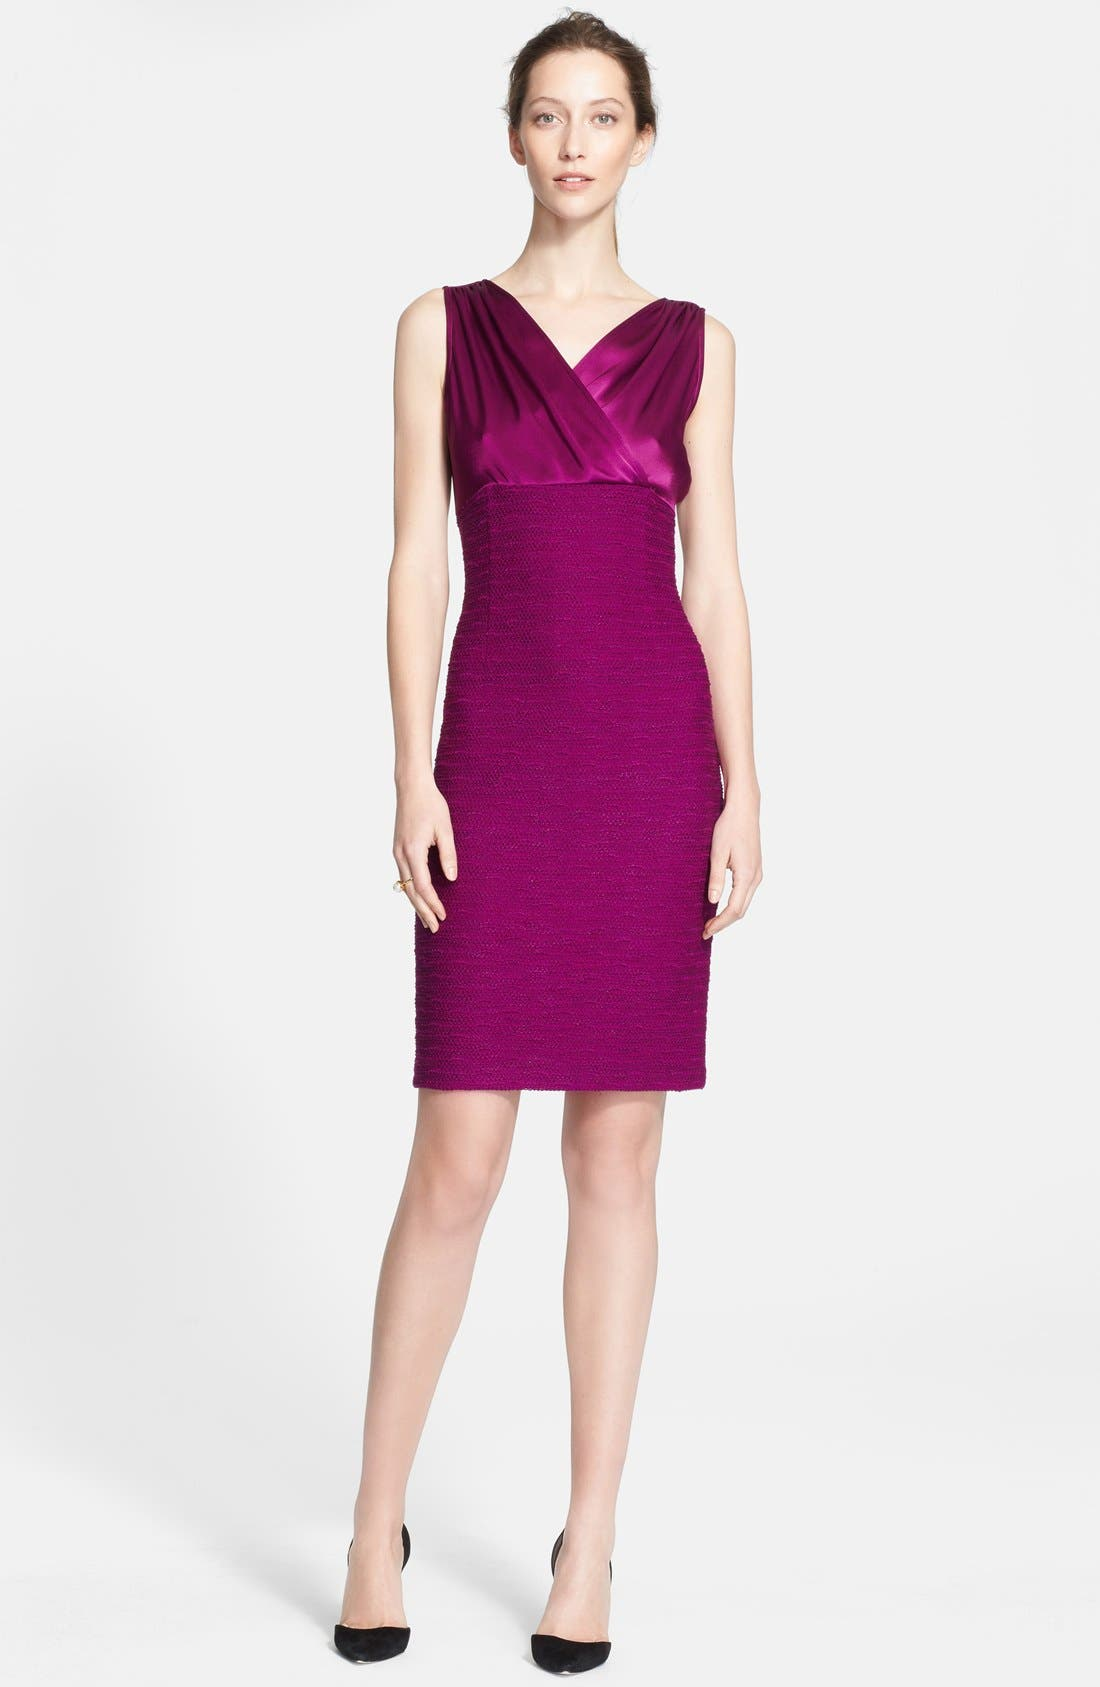 Alternate Image 1 Selected - St. John Collection Liquid Satin & New Shantung Knit Dress (Online Only)